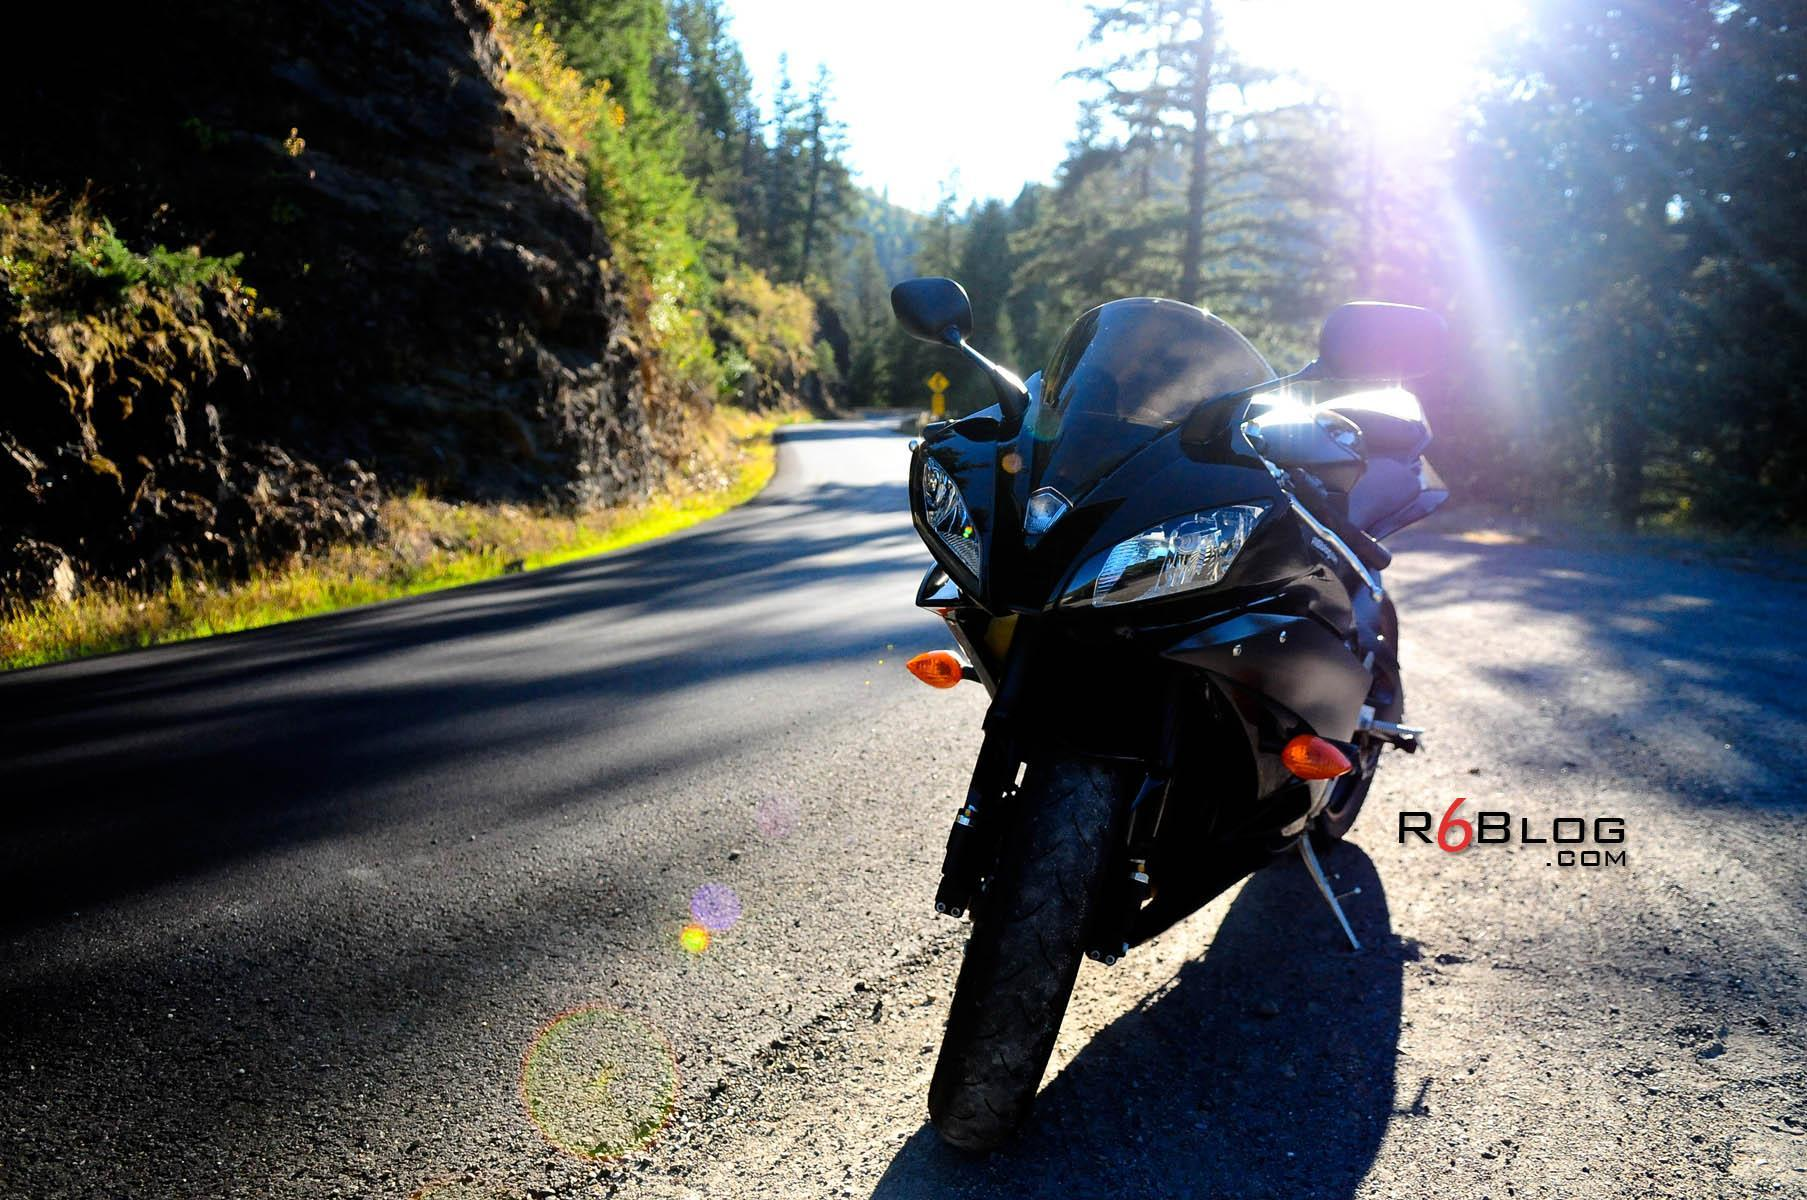 New Yamaha R6 Wallpapers From R6Blog! Yamaha R6 Wallpapers 7